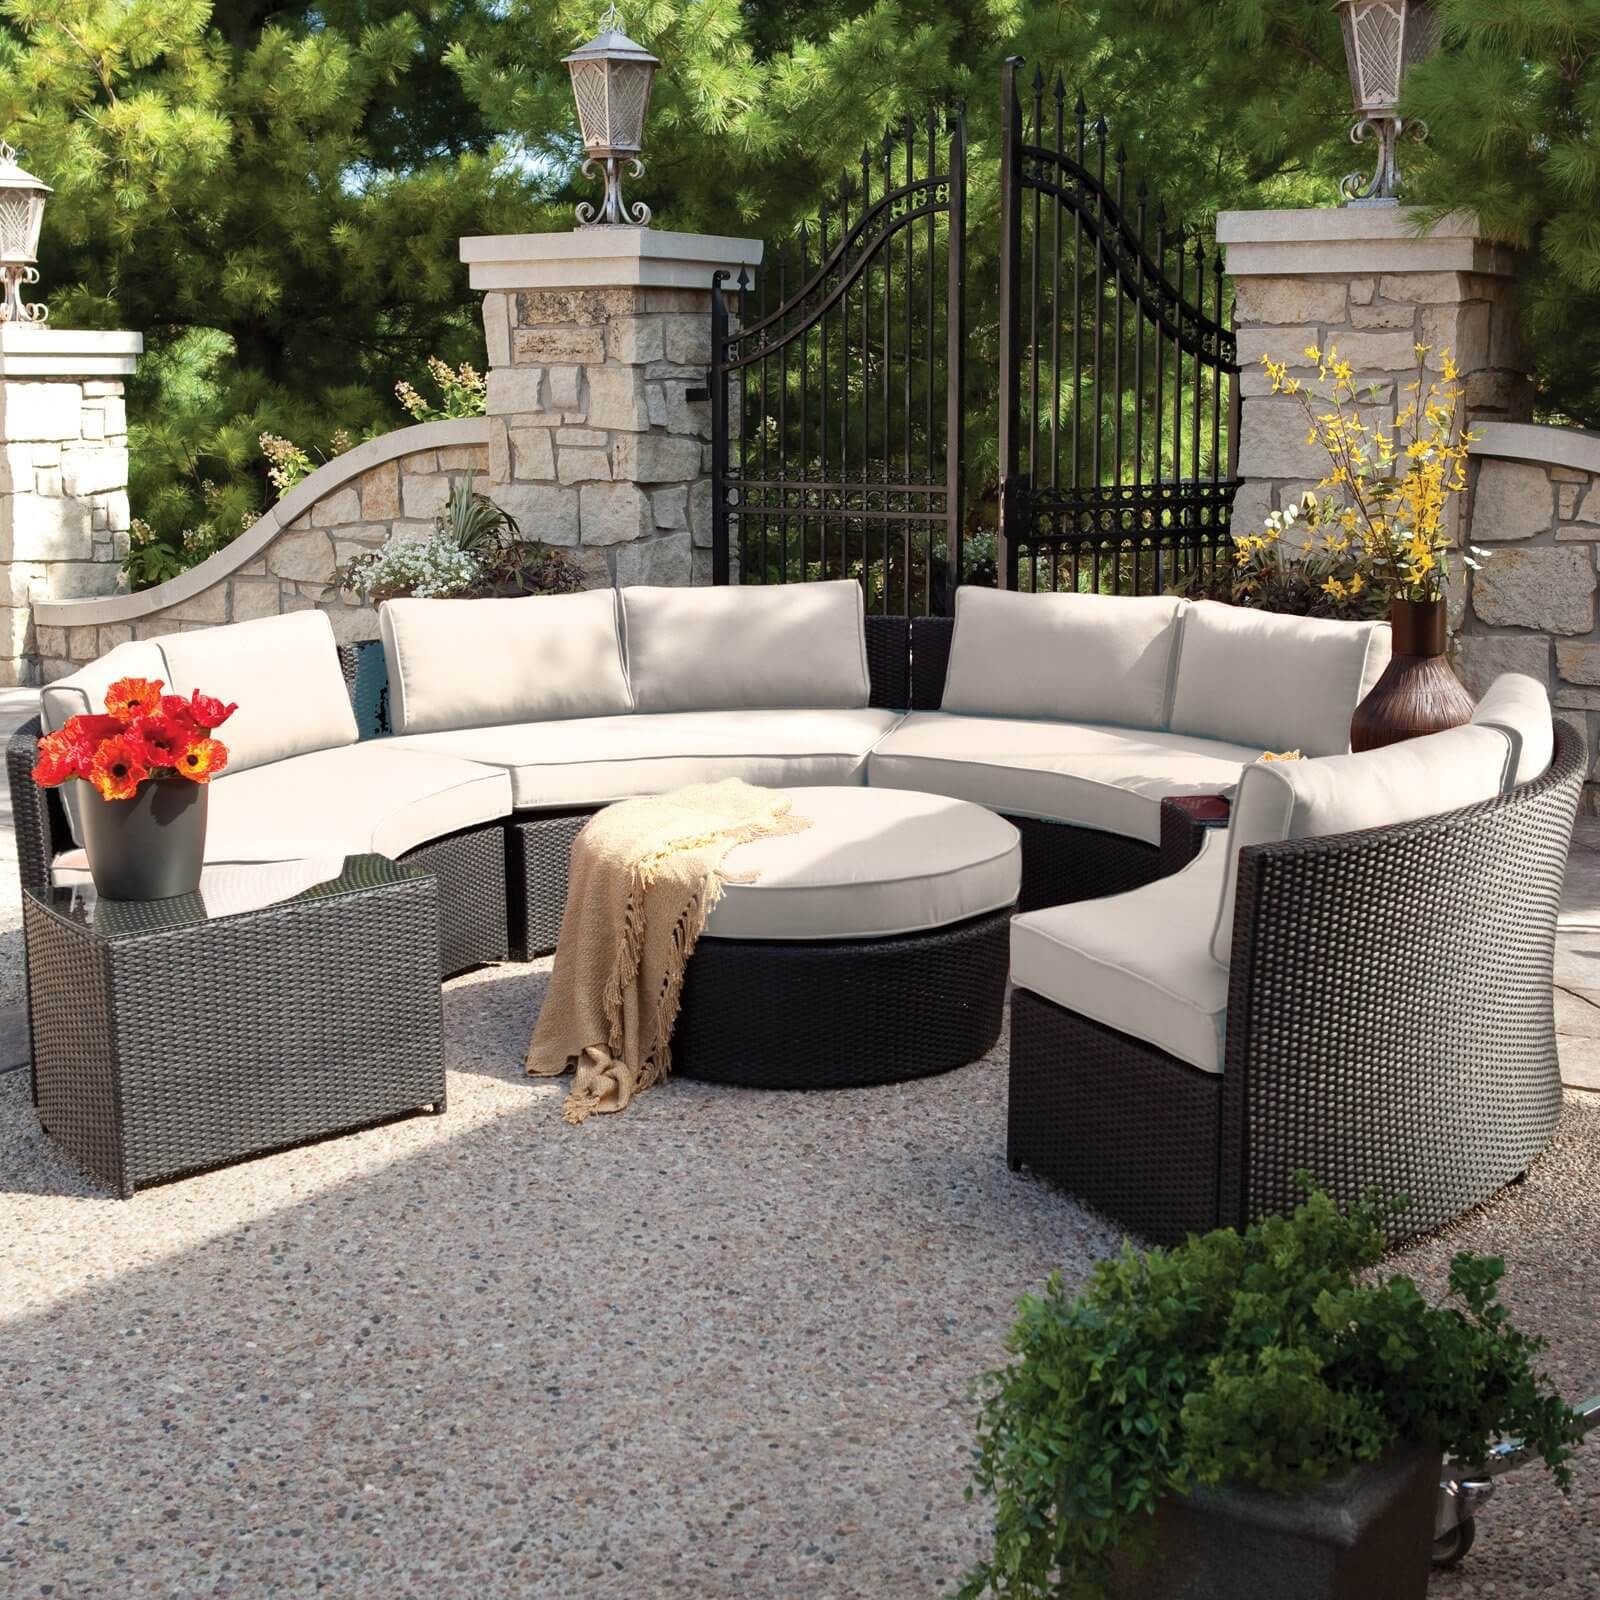 25 Awesome Modern Brown All Weather Outdoor Patio Sectionals Large  circular conversation patio sectional features high contrast between  dark resin wicker construction and off